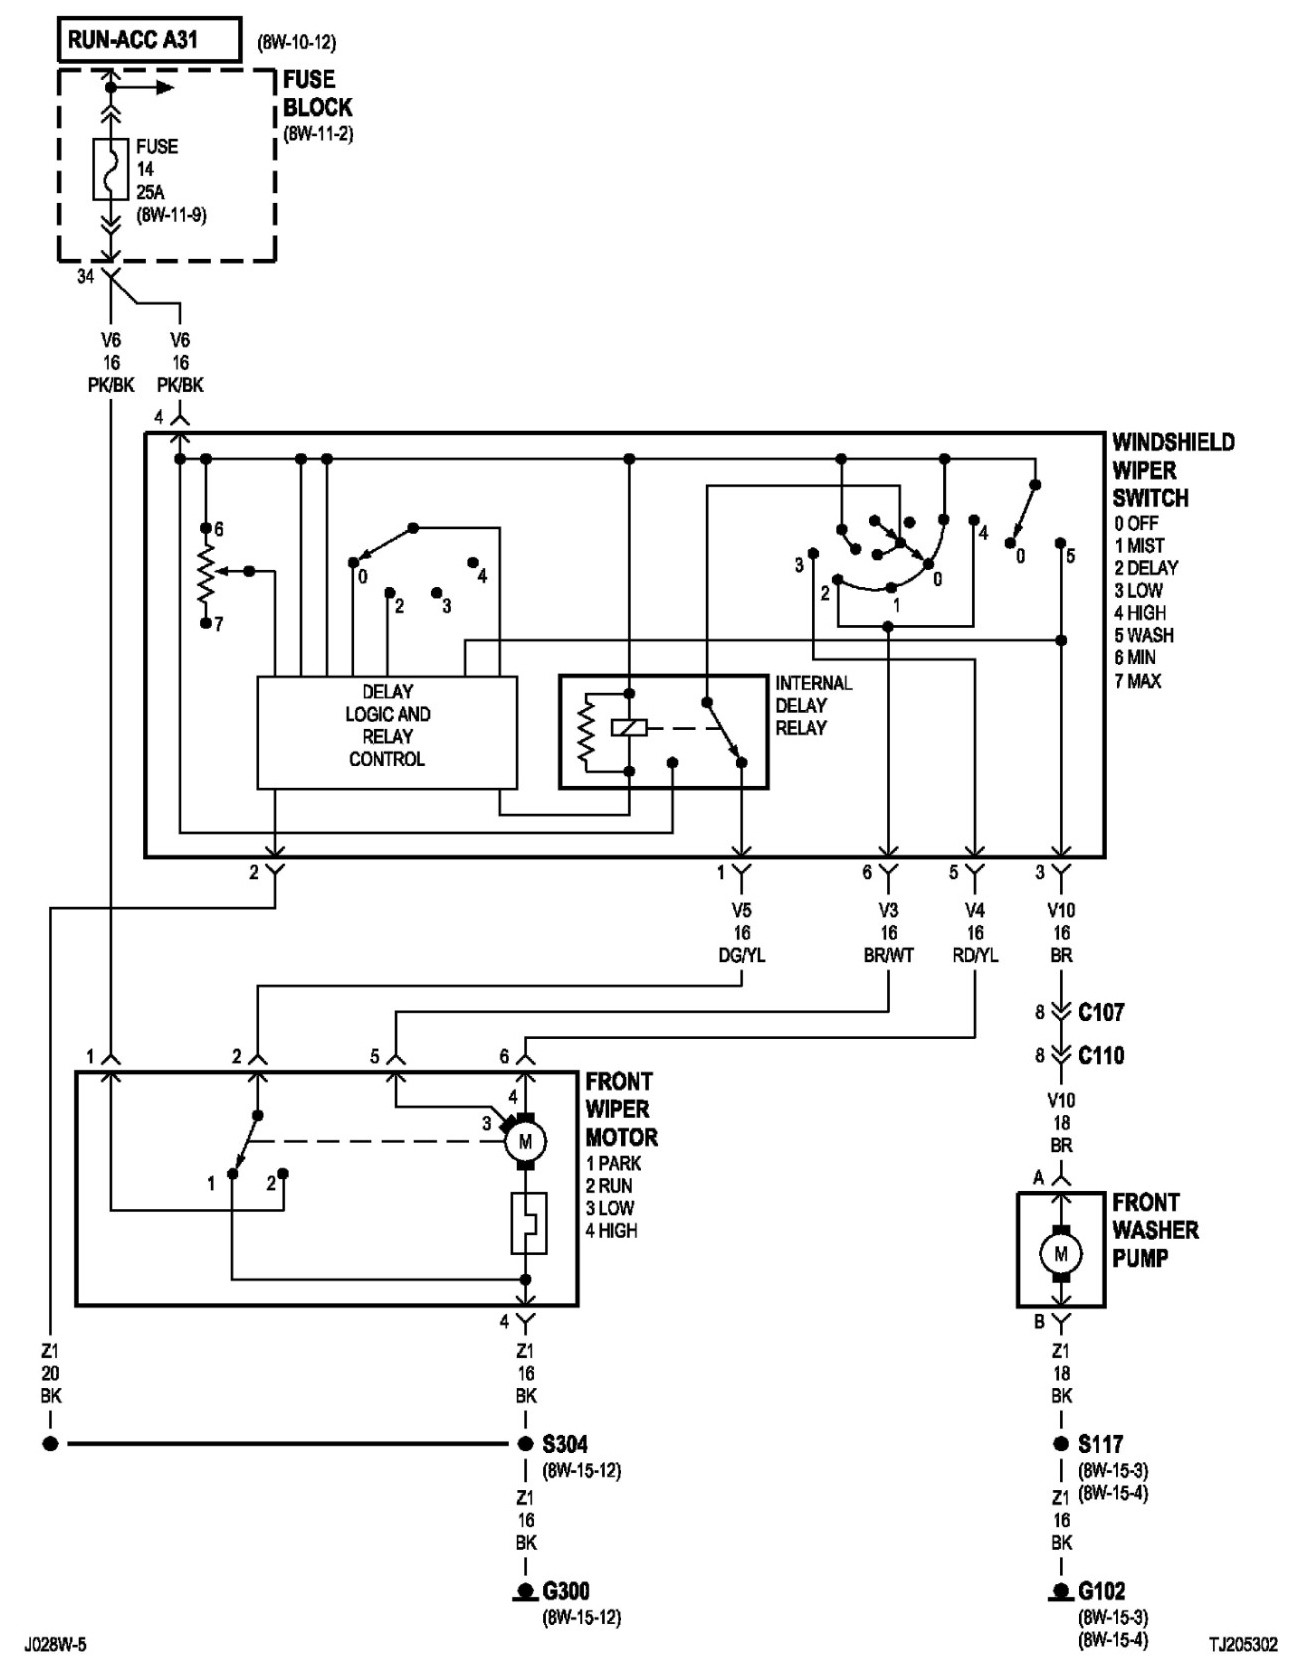 2010 Jeep Patriot Wiring Diagrams Data. 2010 Jeep Wrangler Factory Stereo  ...